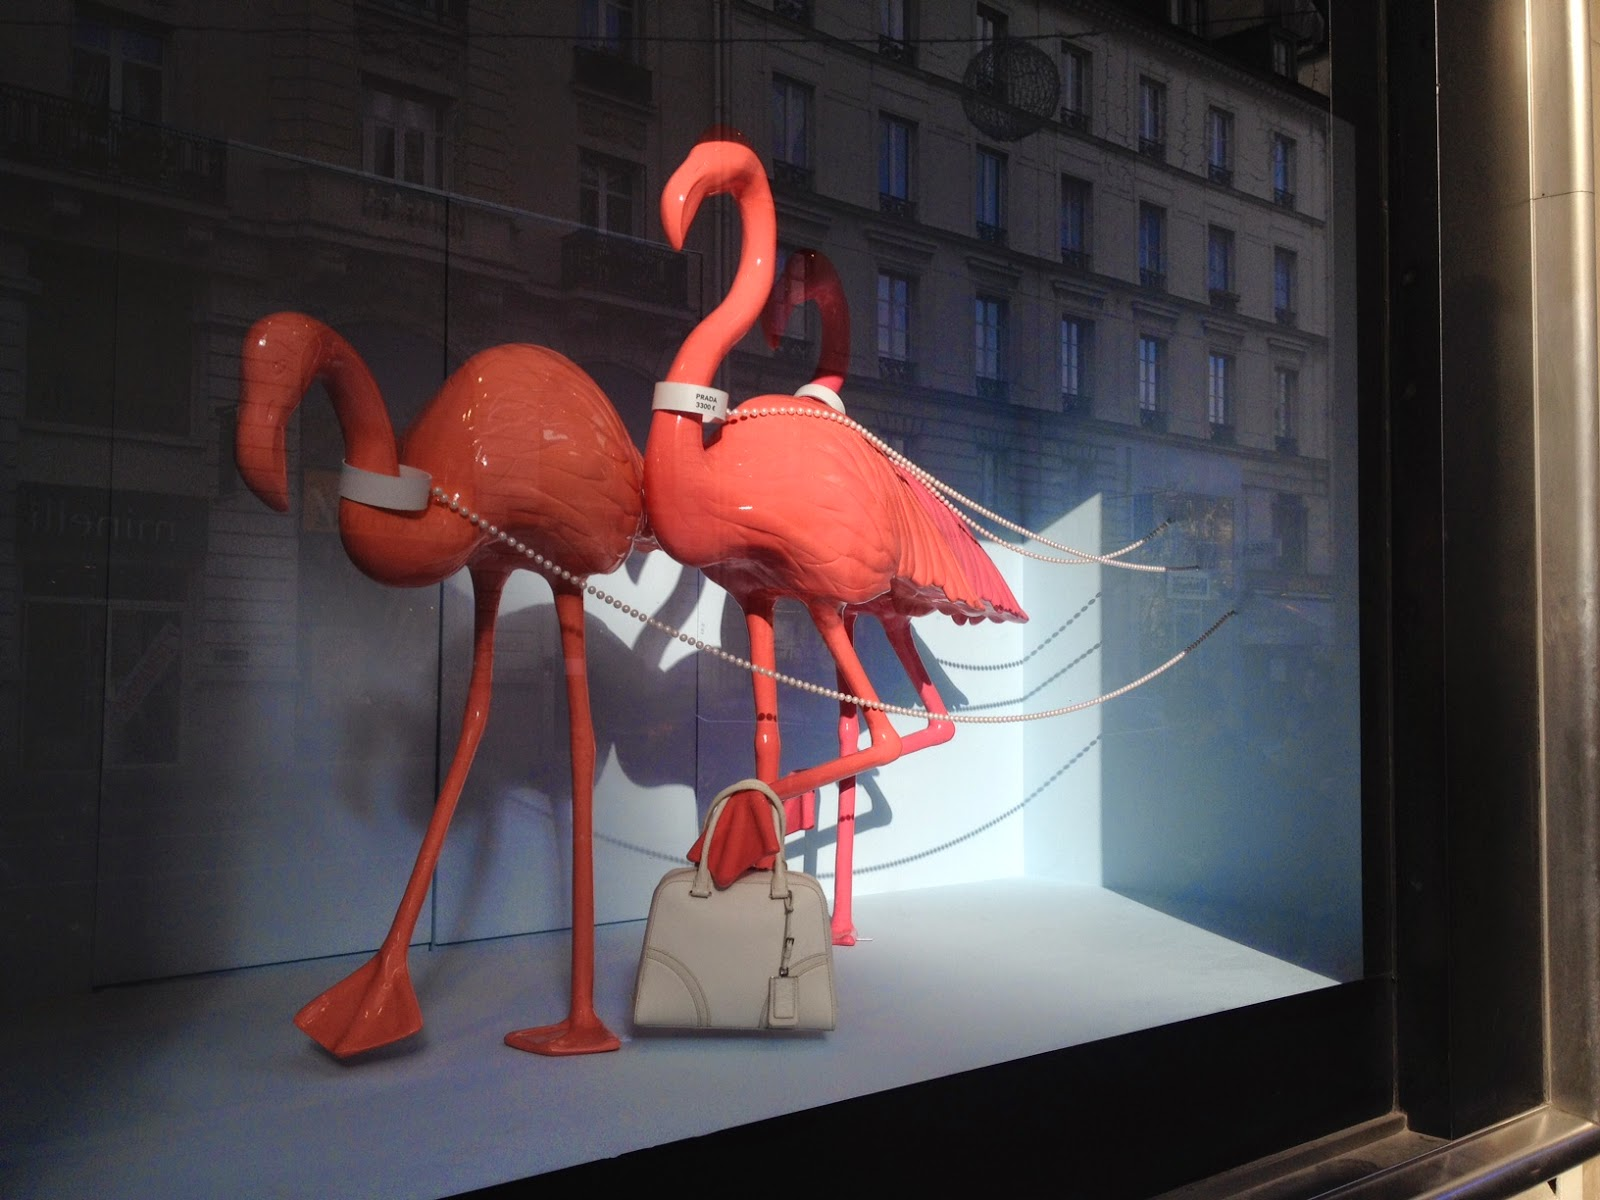 Flamingo window at Le Bon Marché, Paris